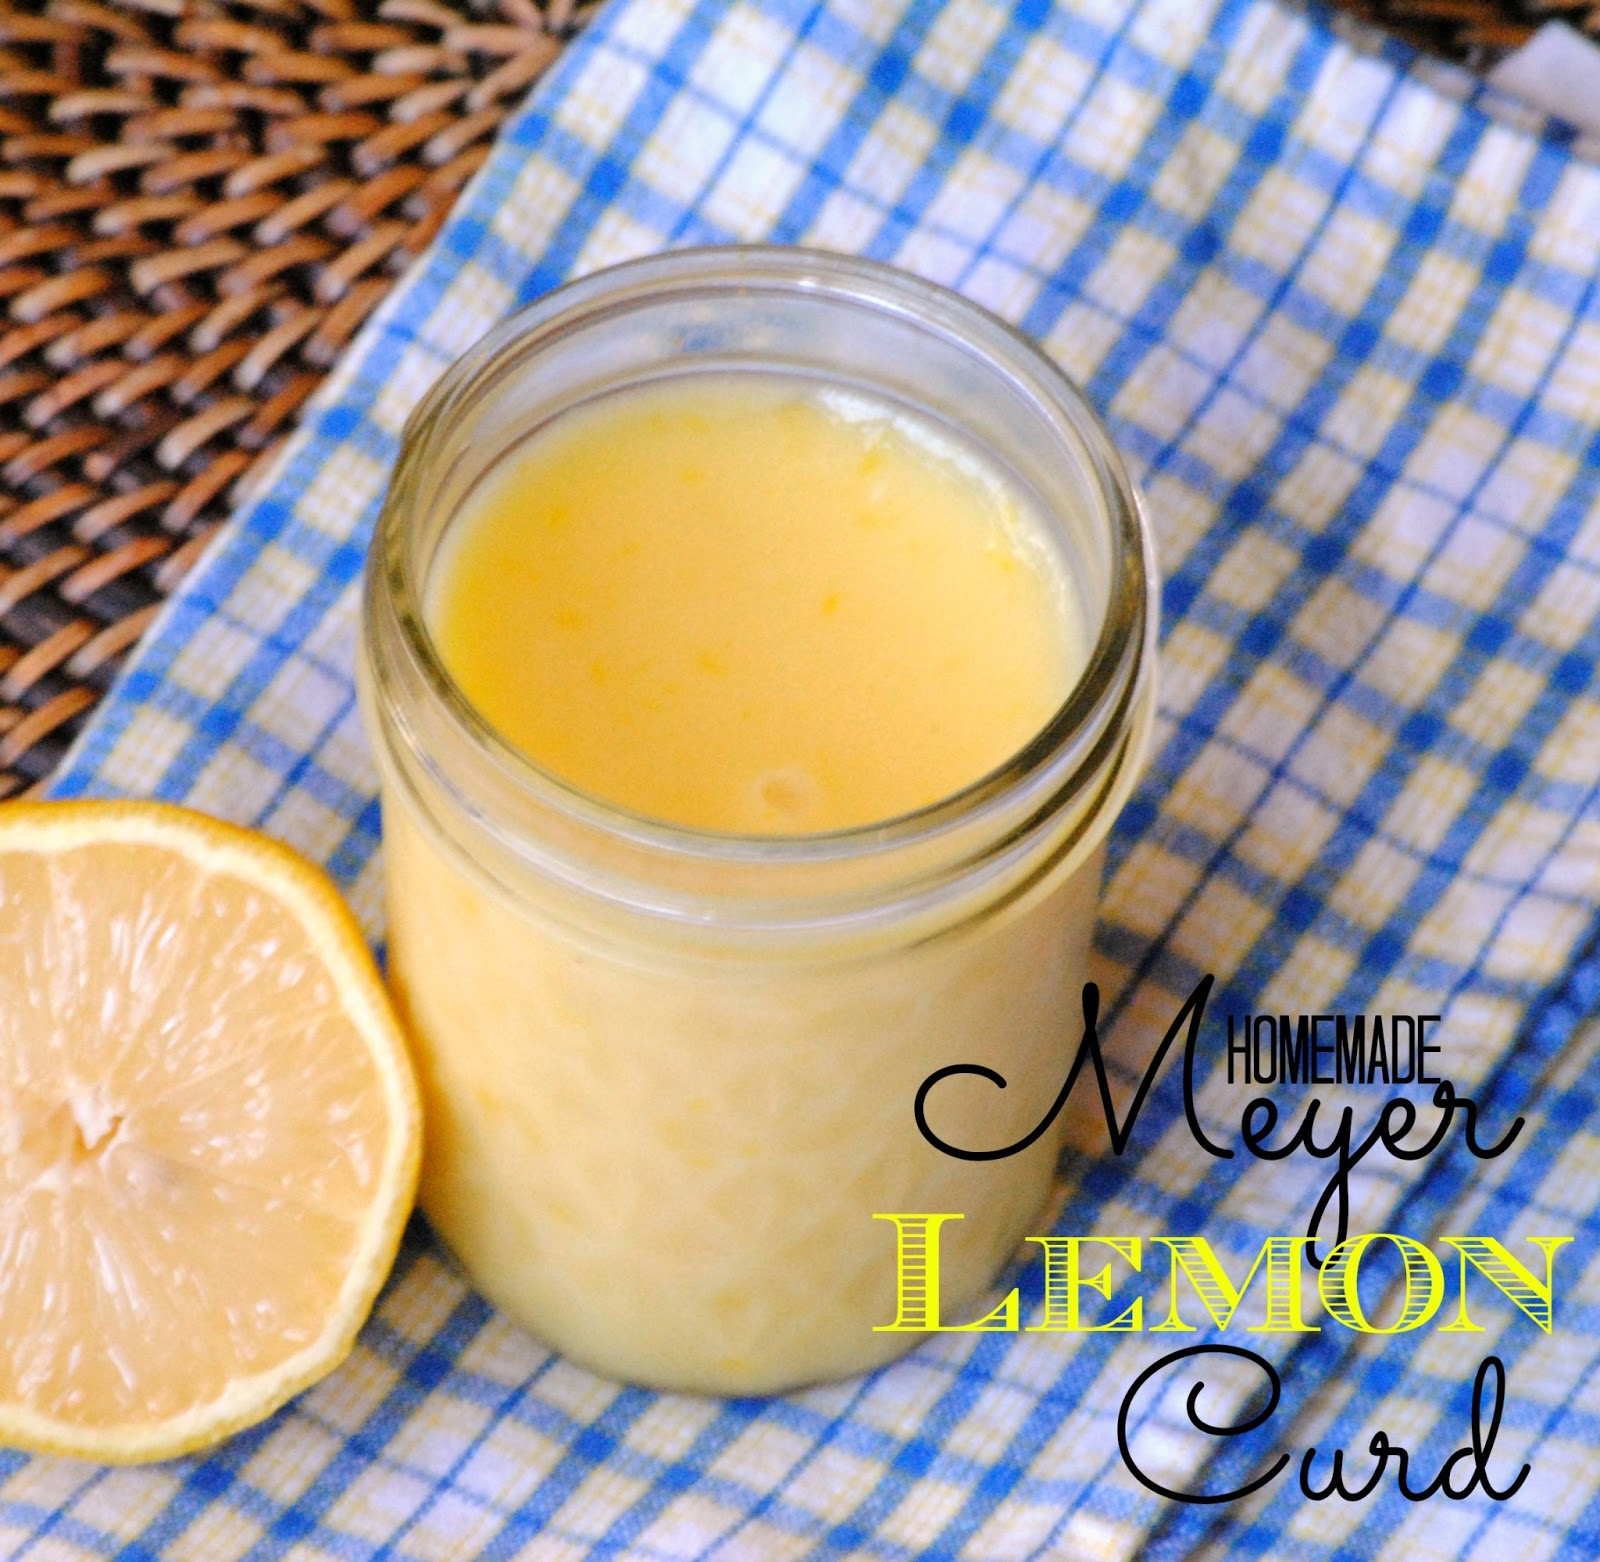 The Farm Girl Recipes: Homemade Meyer Lemon Curd